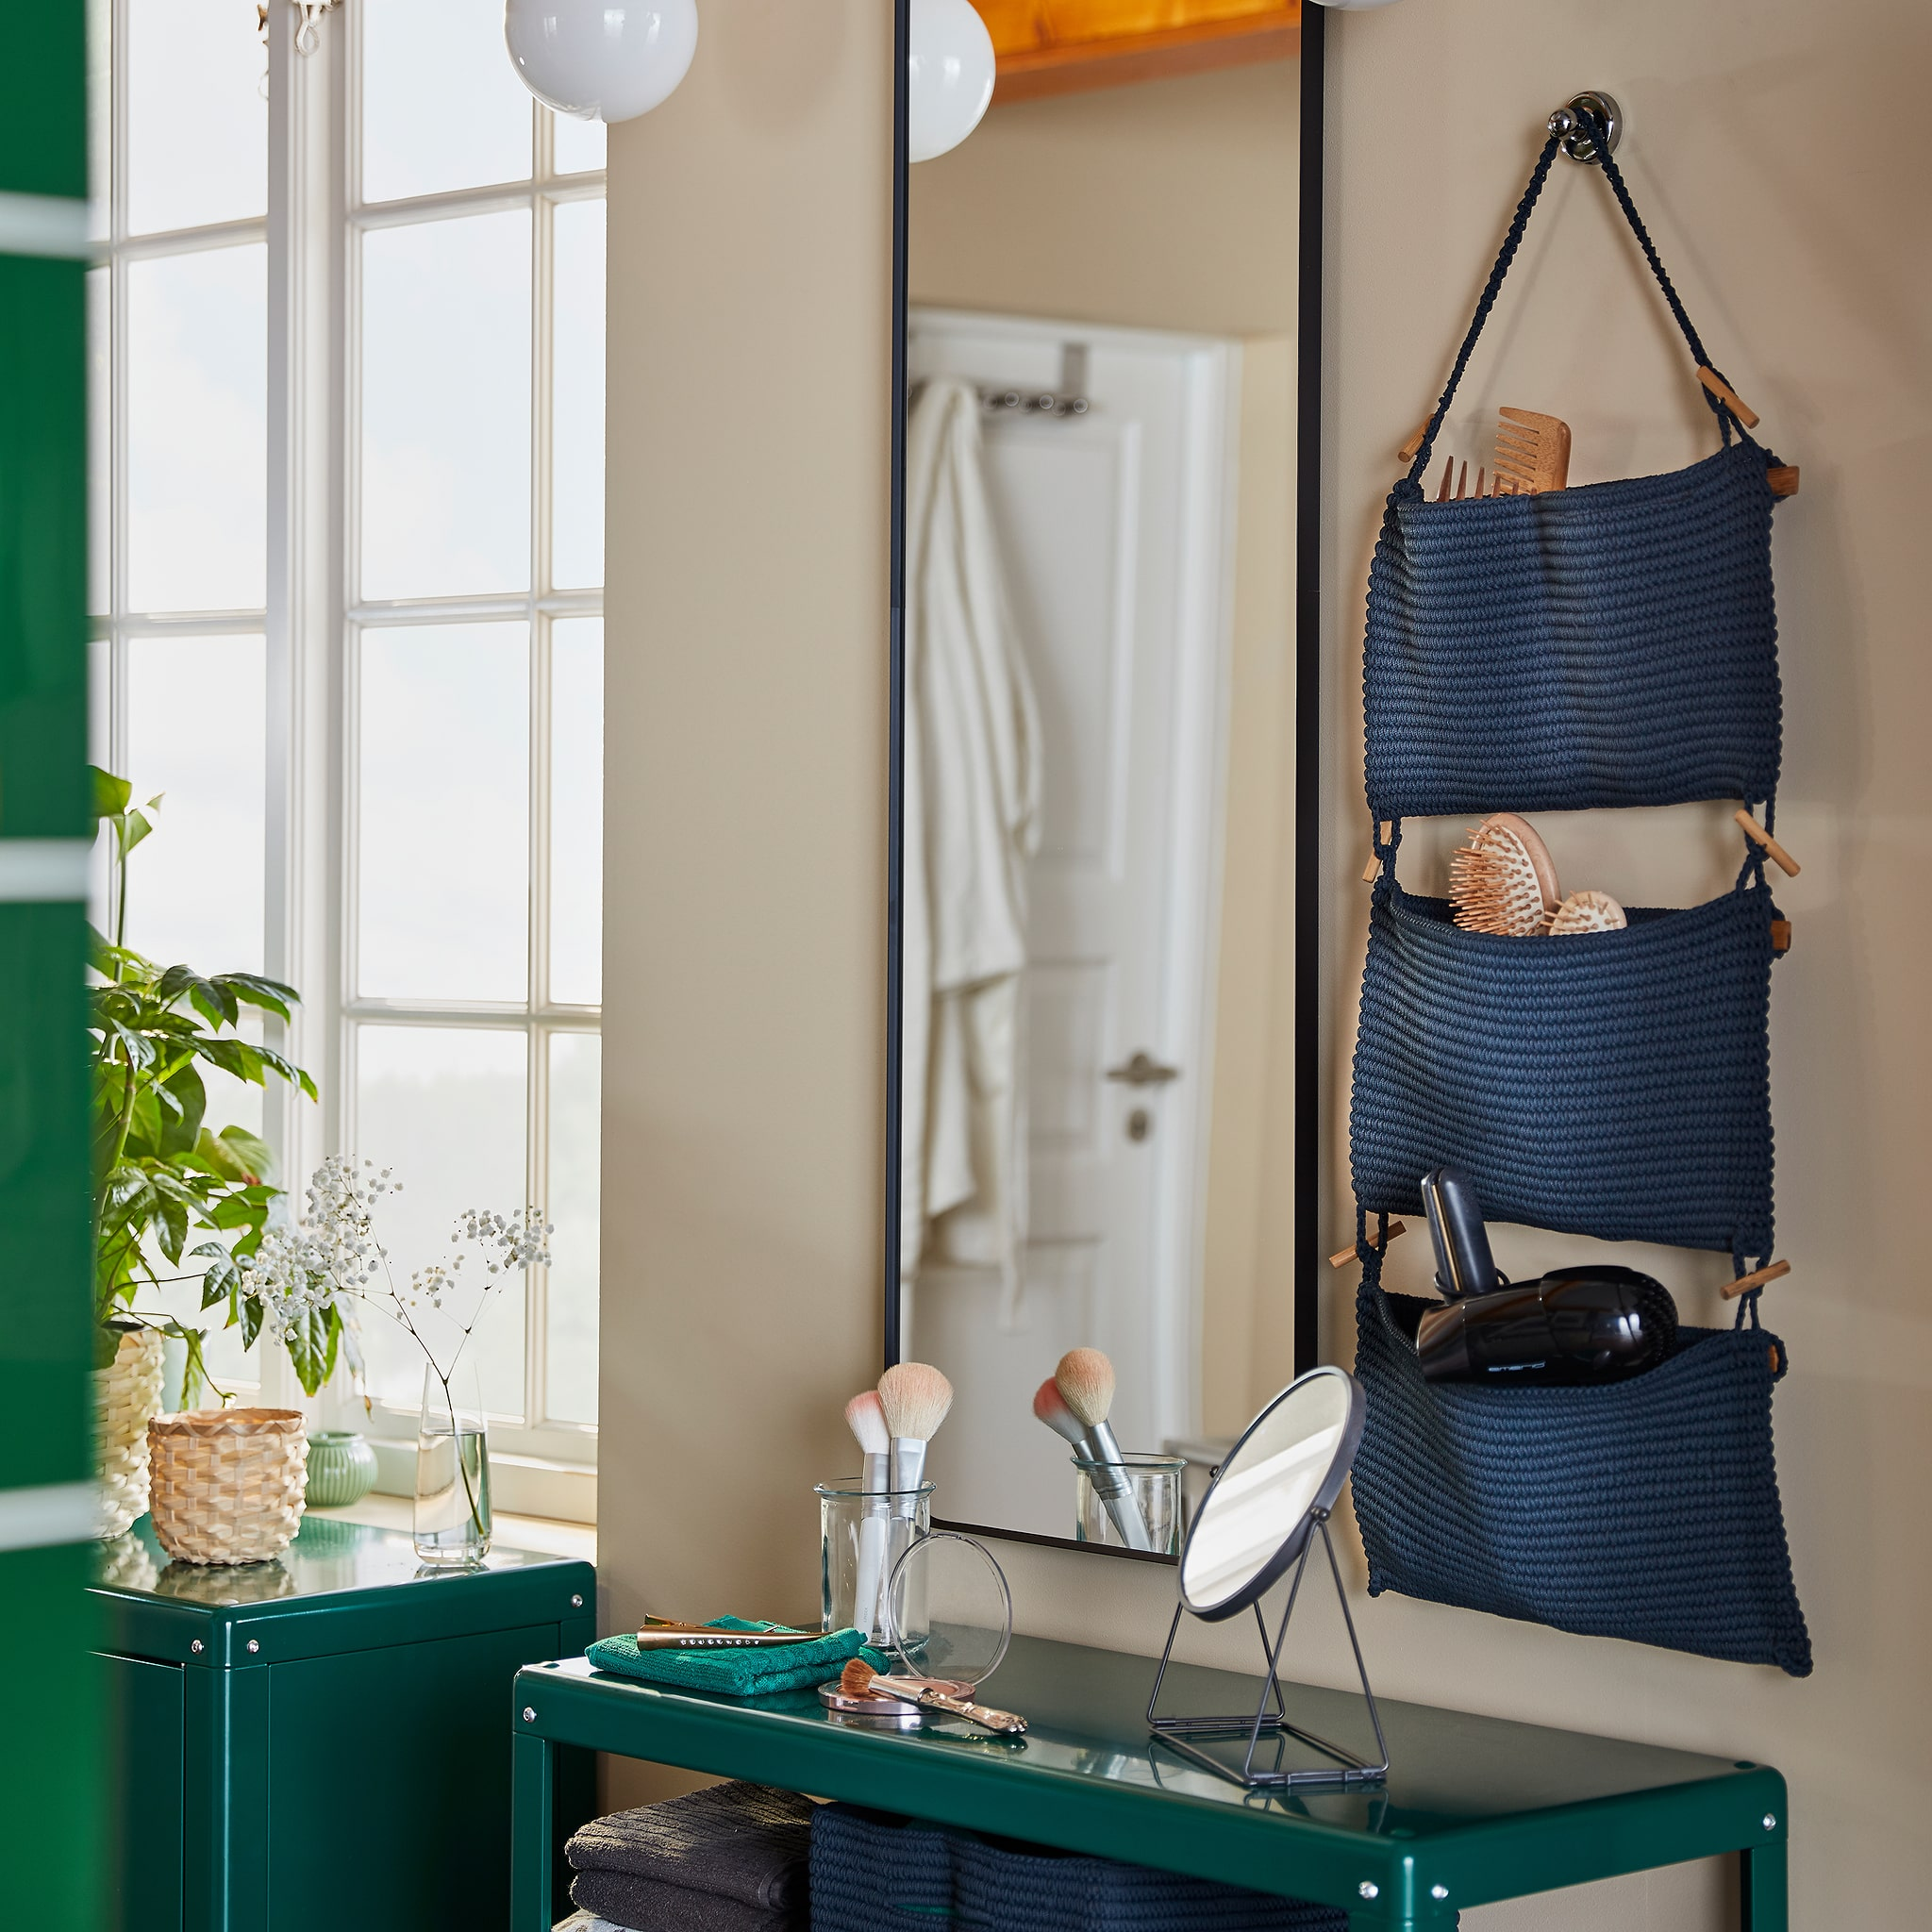 A bathroom beauty station that consists of NORDRANA hanging storage, a wall-mounted mirror and a green shelving unit.